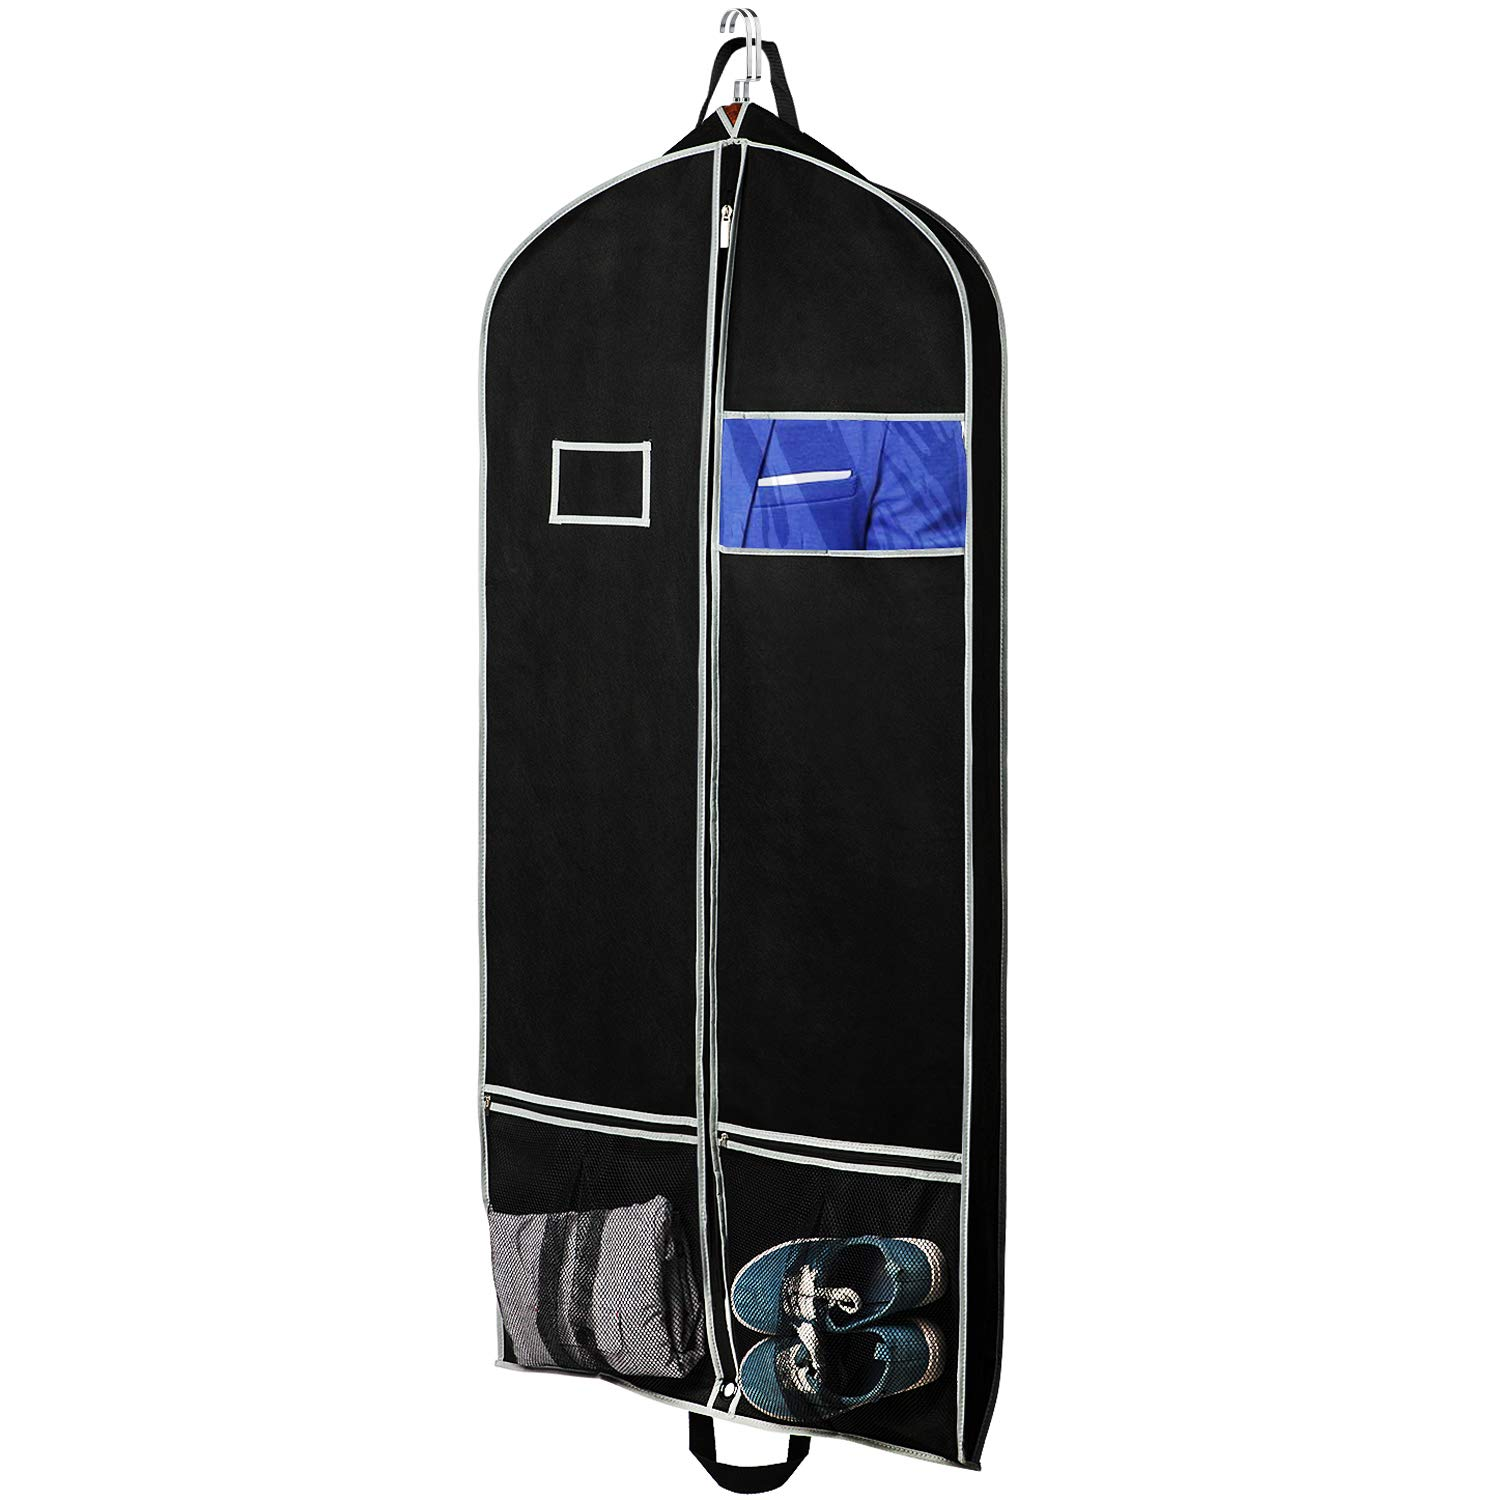 Amazon.com: Zilink Breathable Hanging Garment Bags for ...